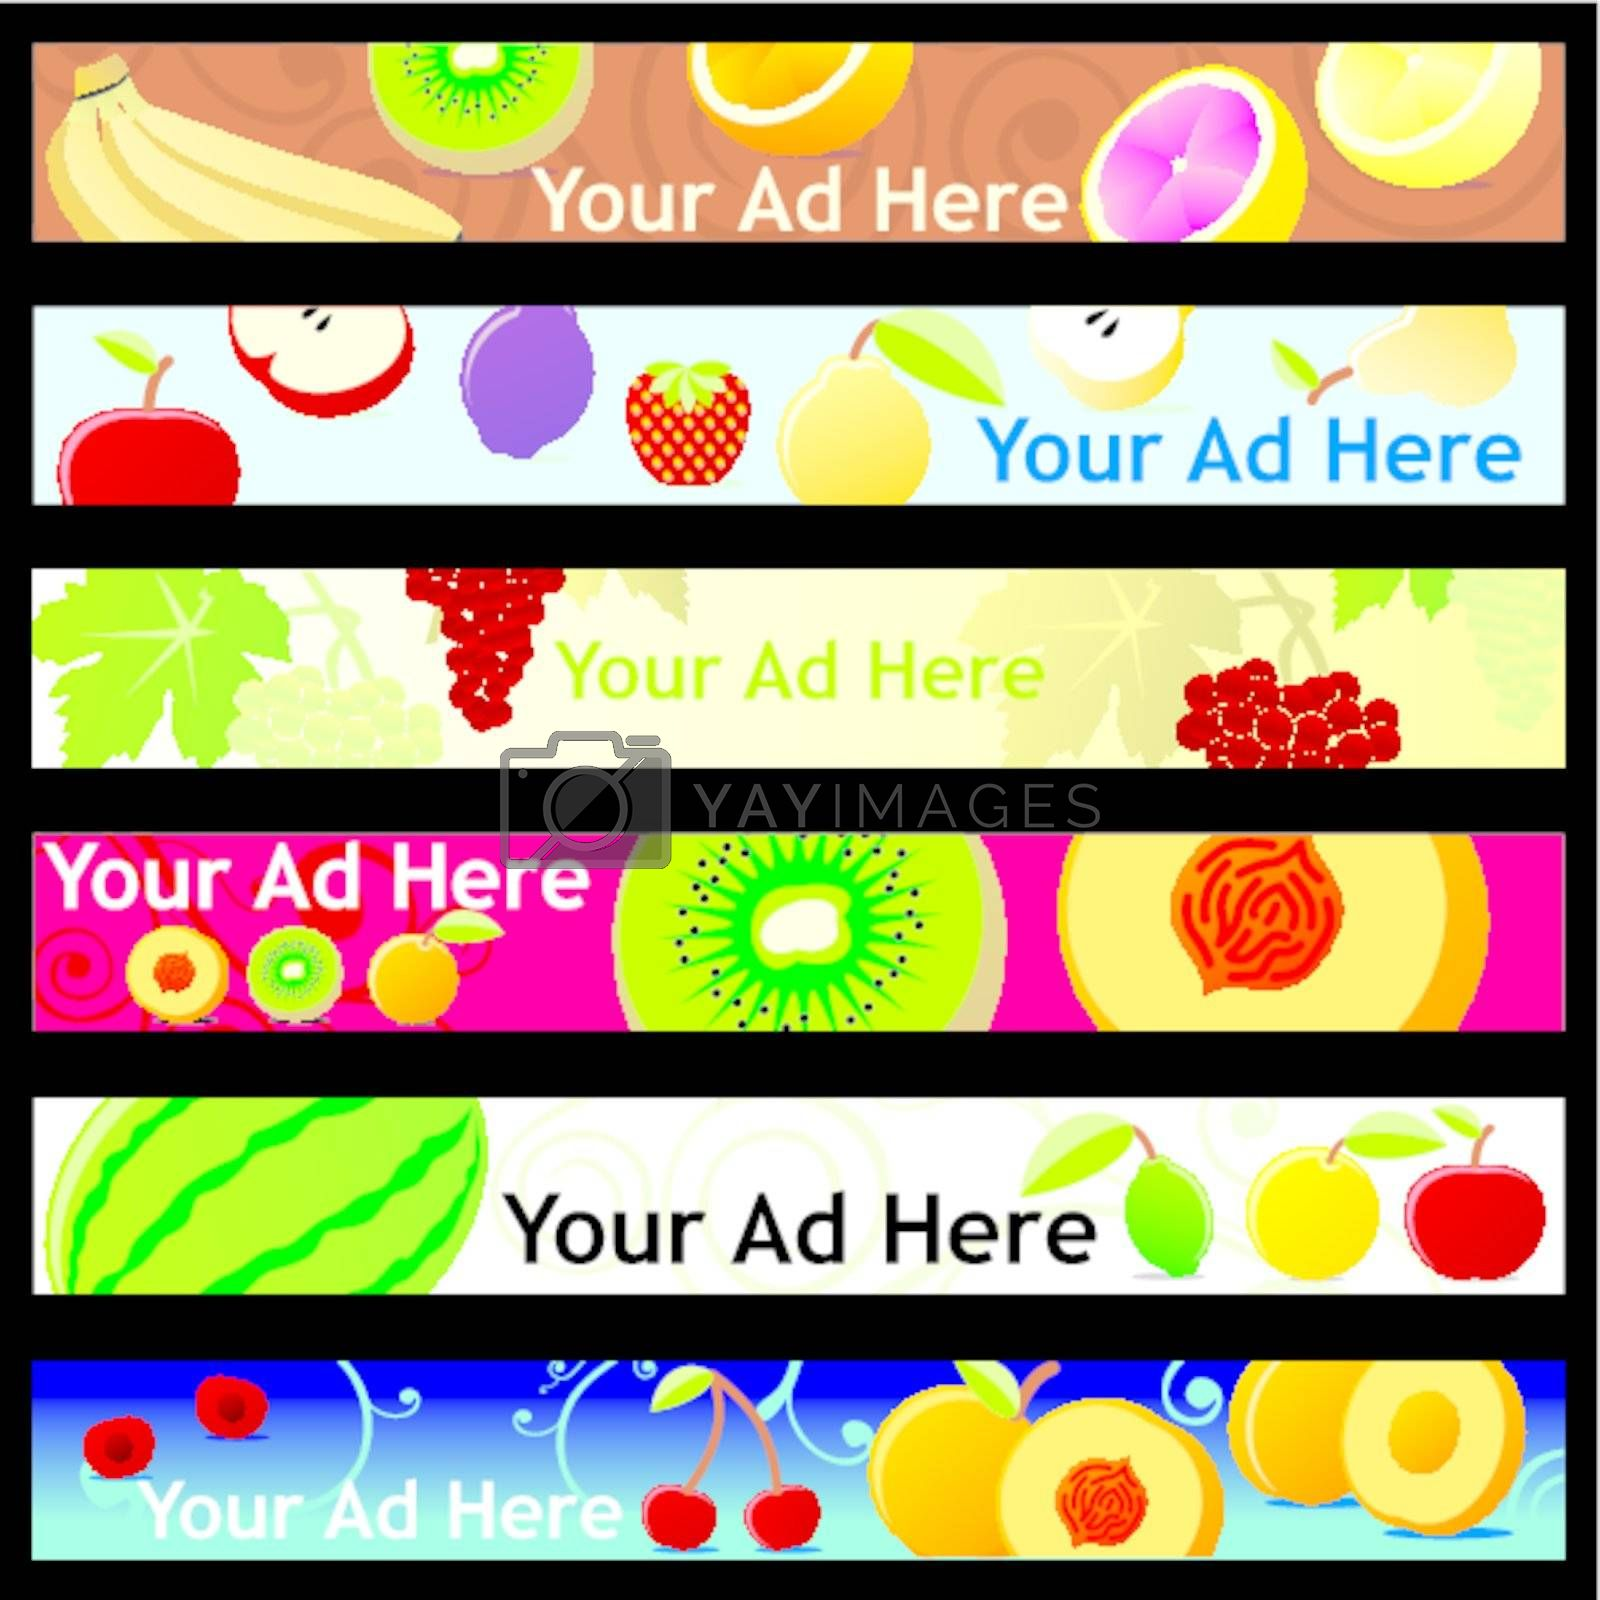 fully editable vector web banner with different layouts ready to use